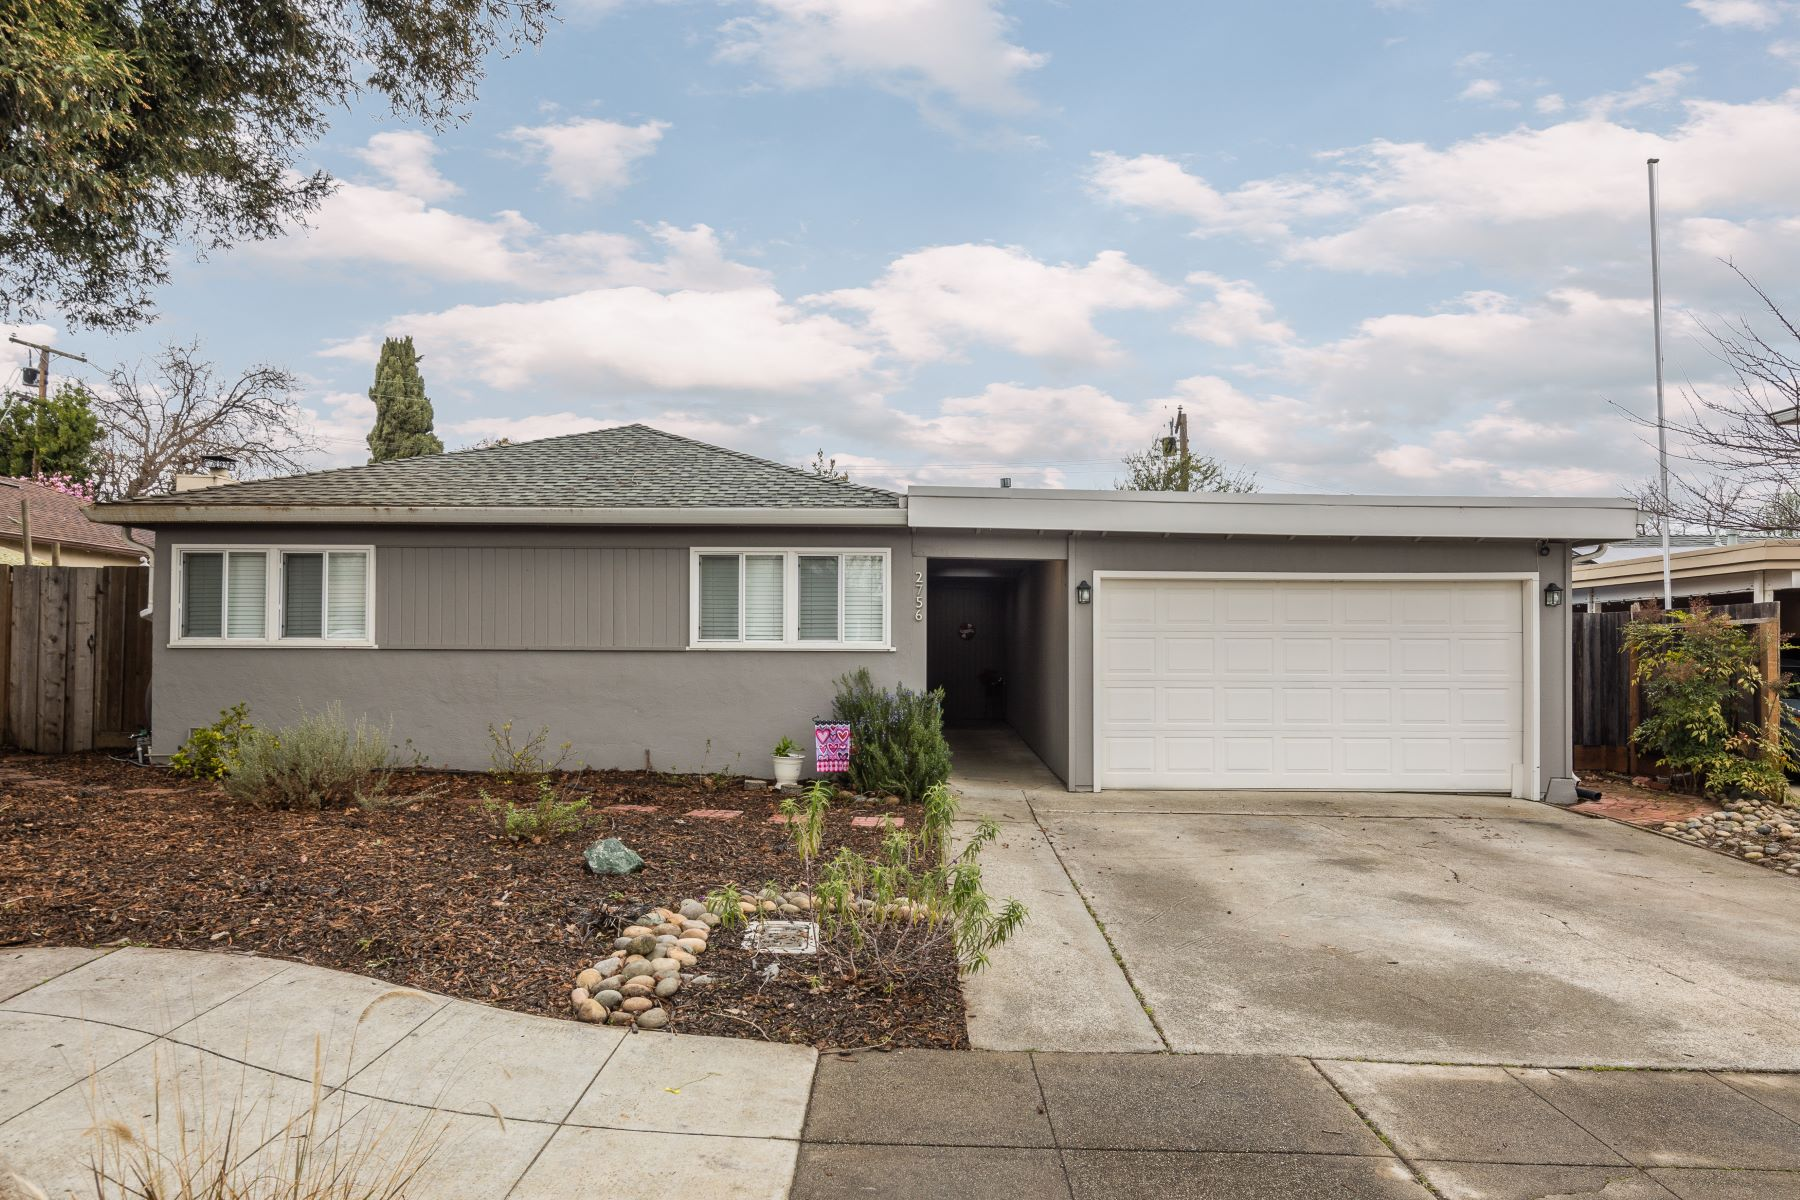 Single Family Home for Active at Modern Ranch Home 2756 Sussex Way Redwood City, California 94061 United States